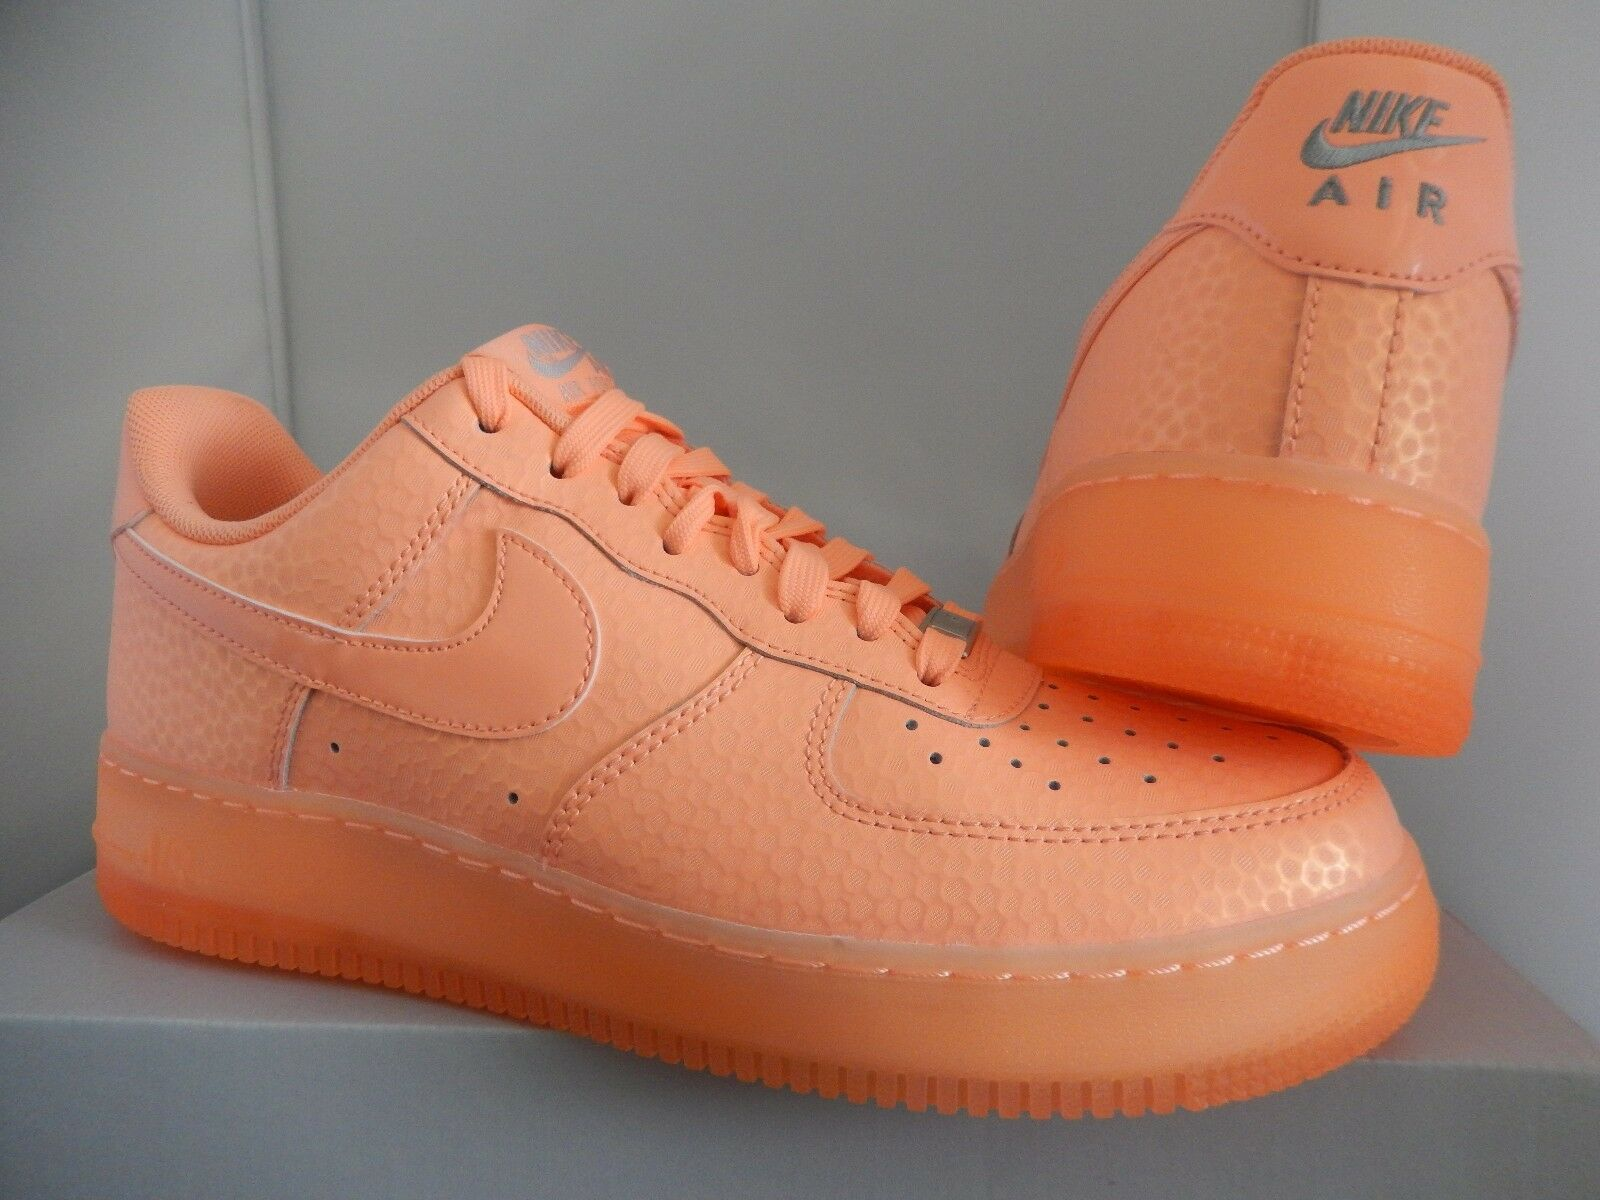 Mujeres Nike Air Force 1 1 1 07 PRM Premium Sunset Glow Talla 8.5 779dbb